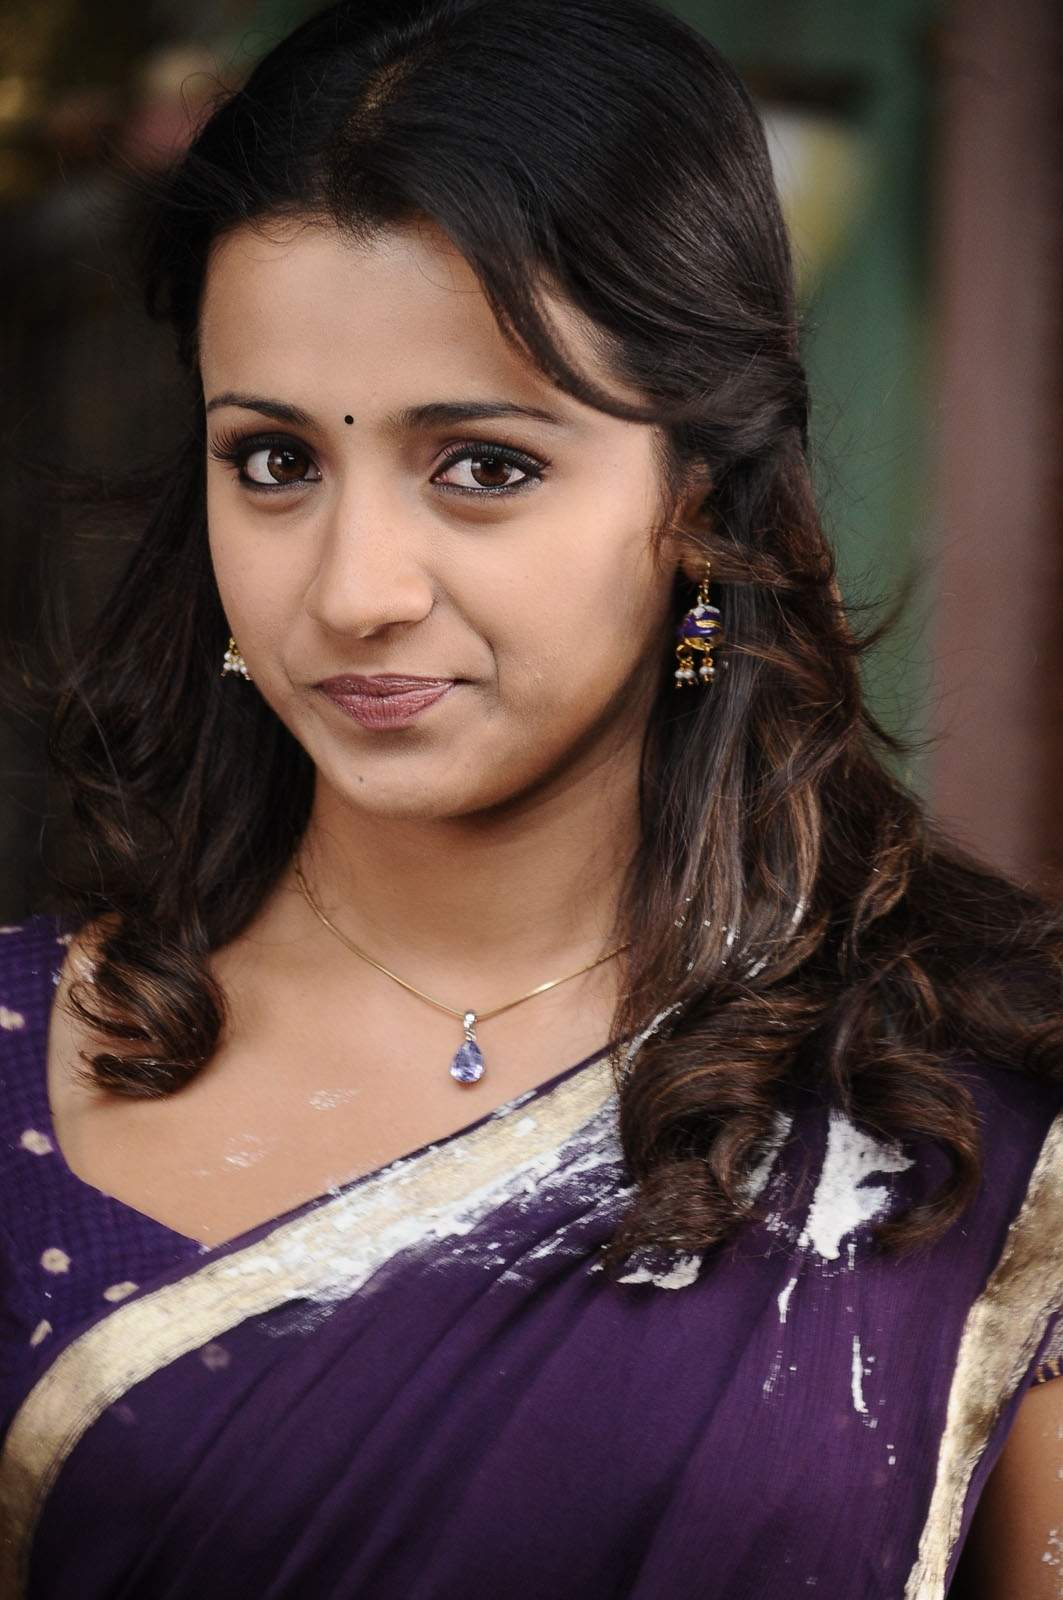 http://1.bp.blogspot.com/-E58NsQgZCog/Tygk-4WTnOI/AAAAAAAACXY/u85oIpUjQ9c/s1600/tollywood-actress-trisha-krishnan-in-saree-high-quality-wallpaper-photos_123actressphotosgallery.com_0.jpg